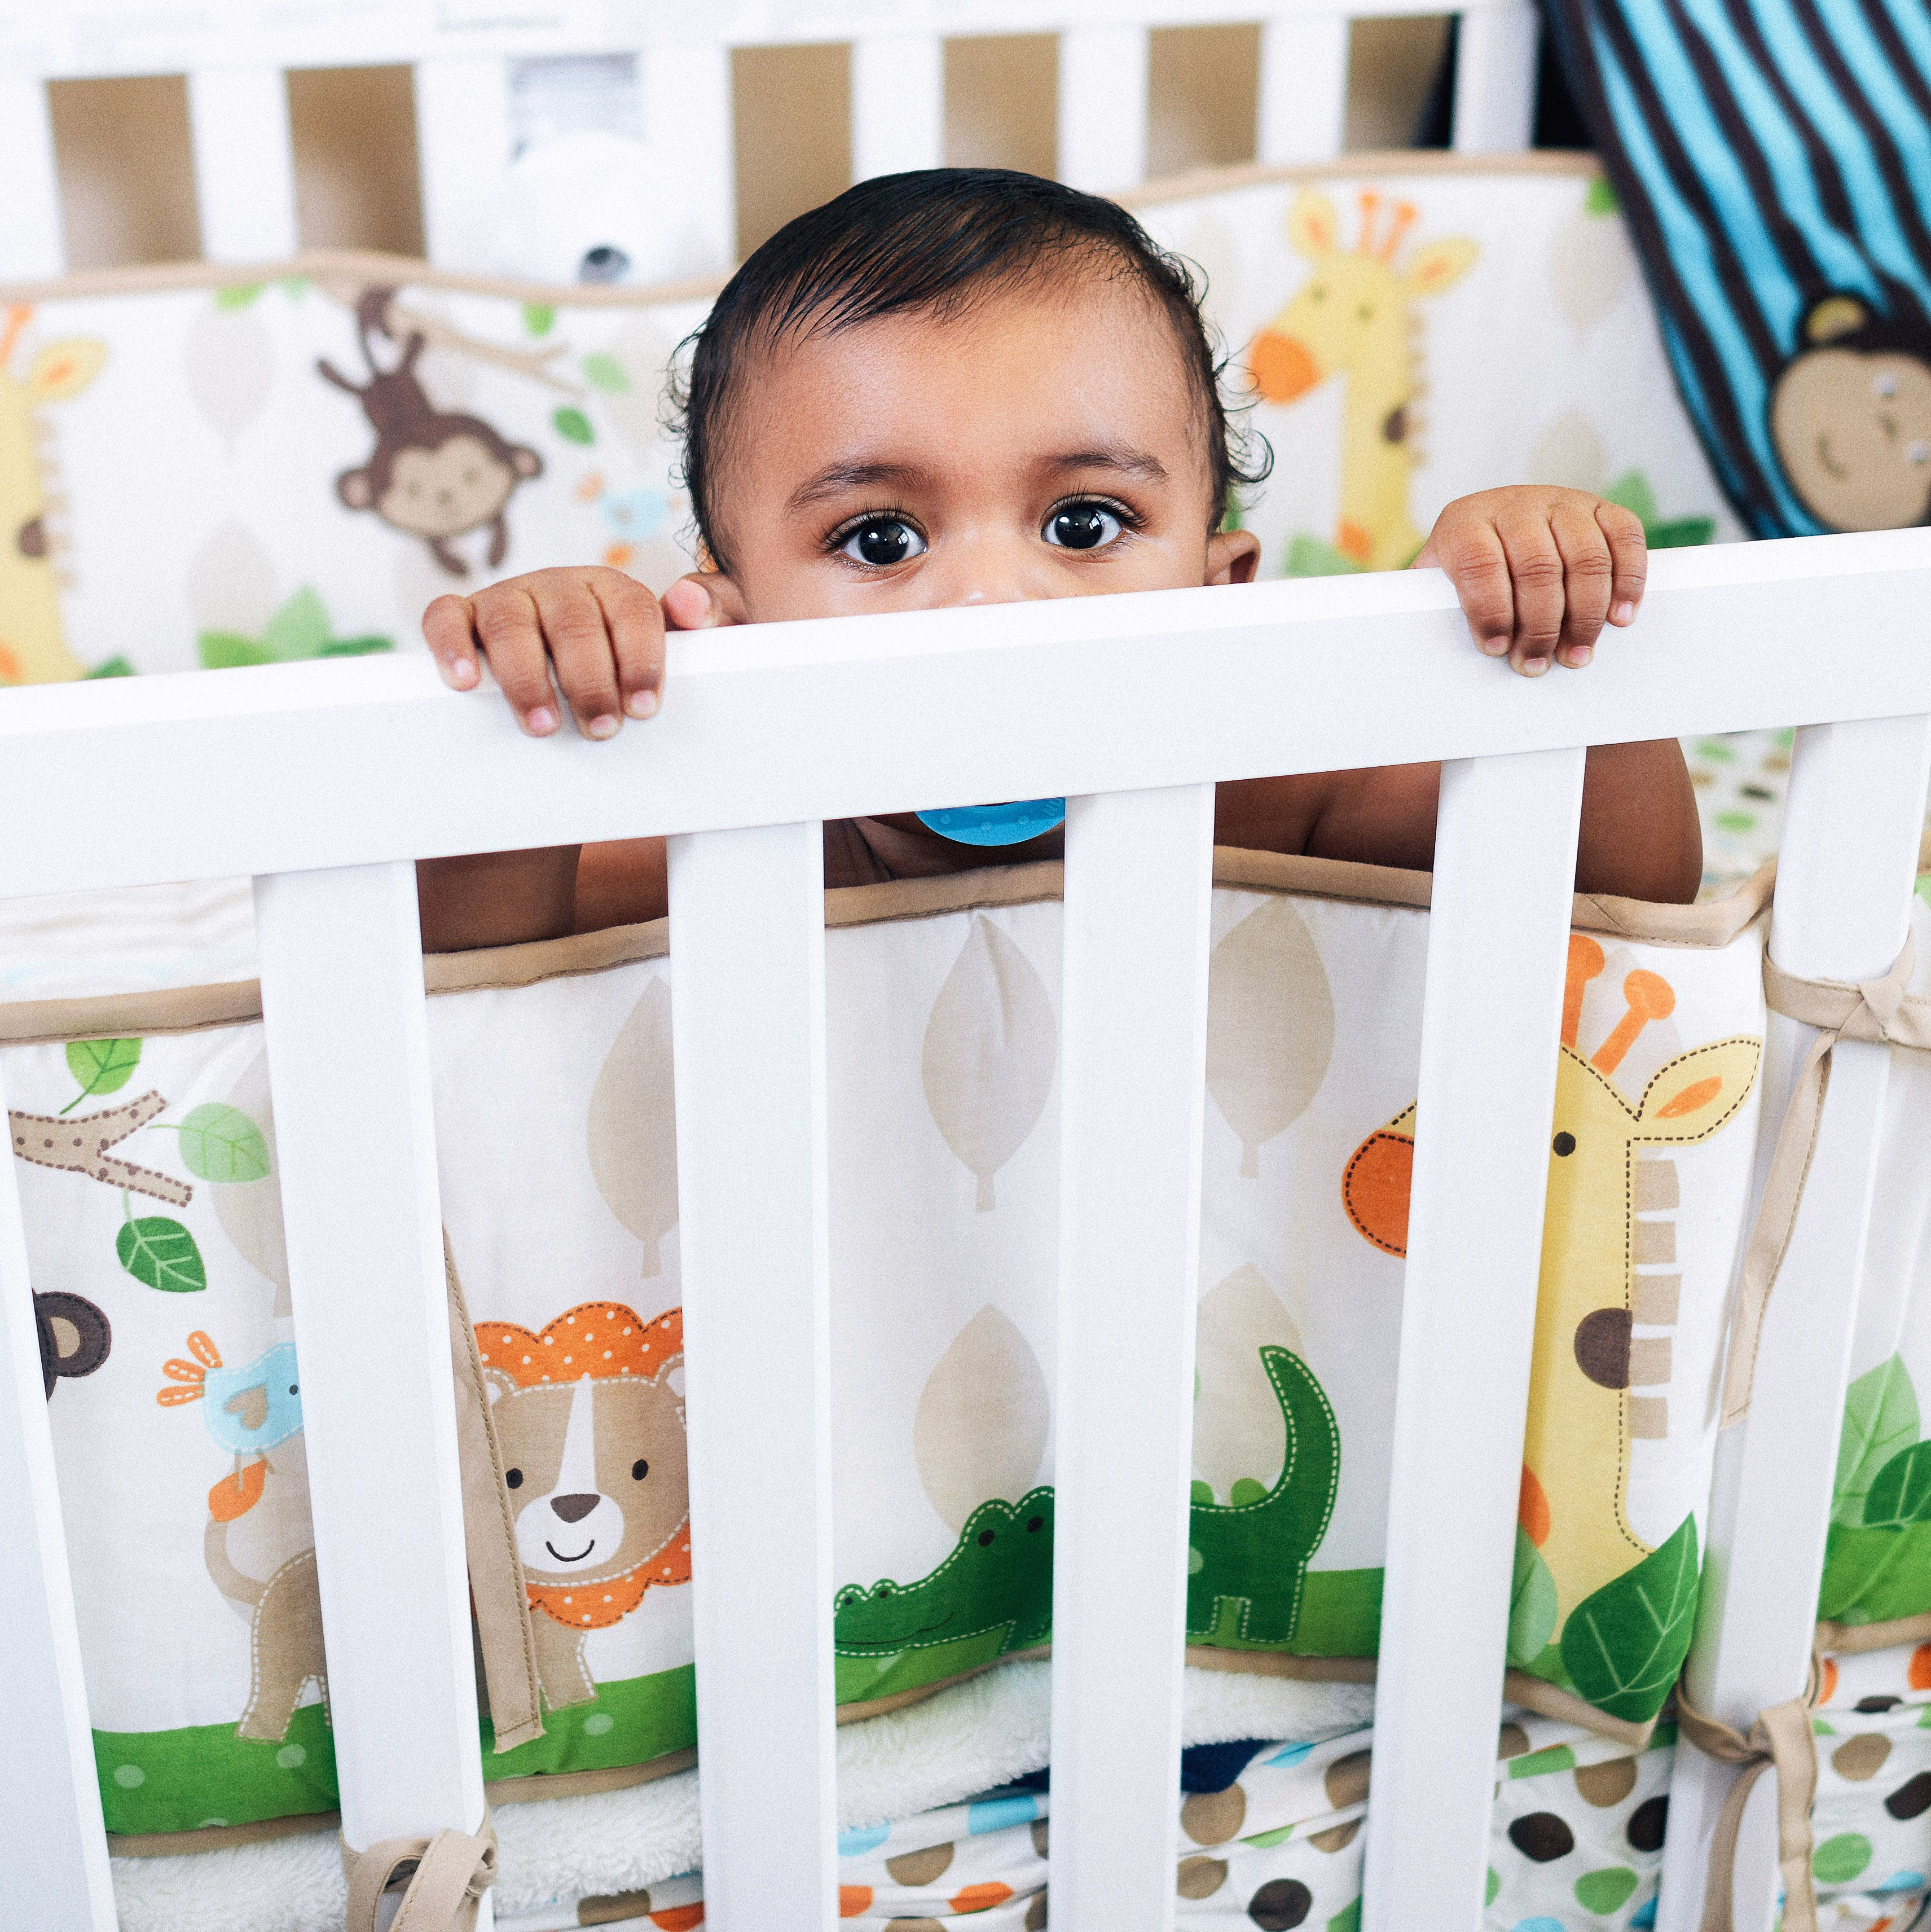 Baby Cots That Attach To Beds Are Crib Bumpers Safe Experts Say Not Even Those